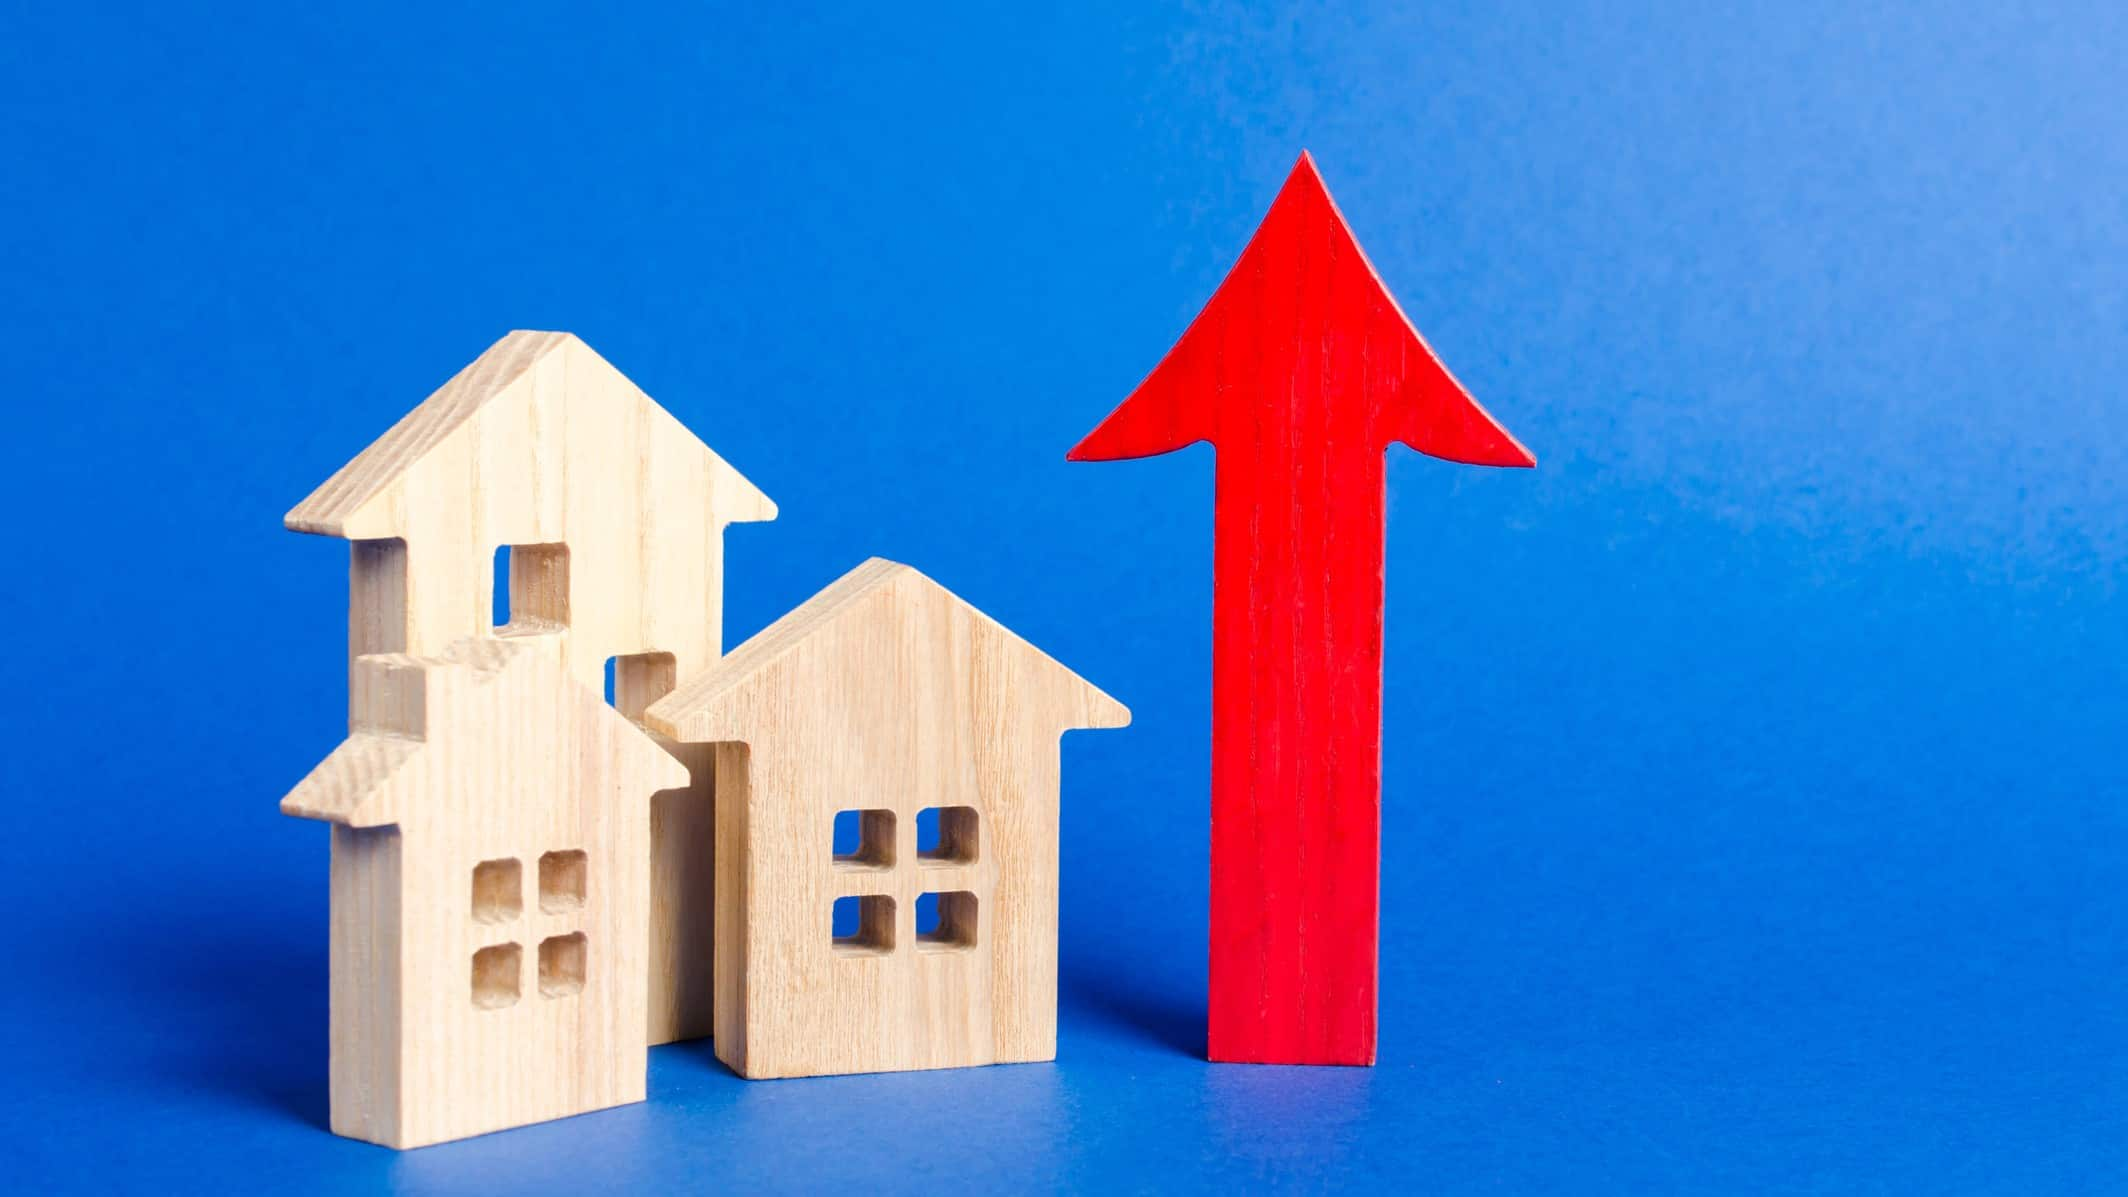 growth in housing asx shares represented by little wooden houses next to rising red arrow